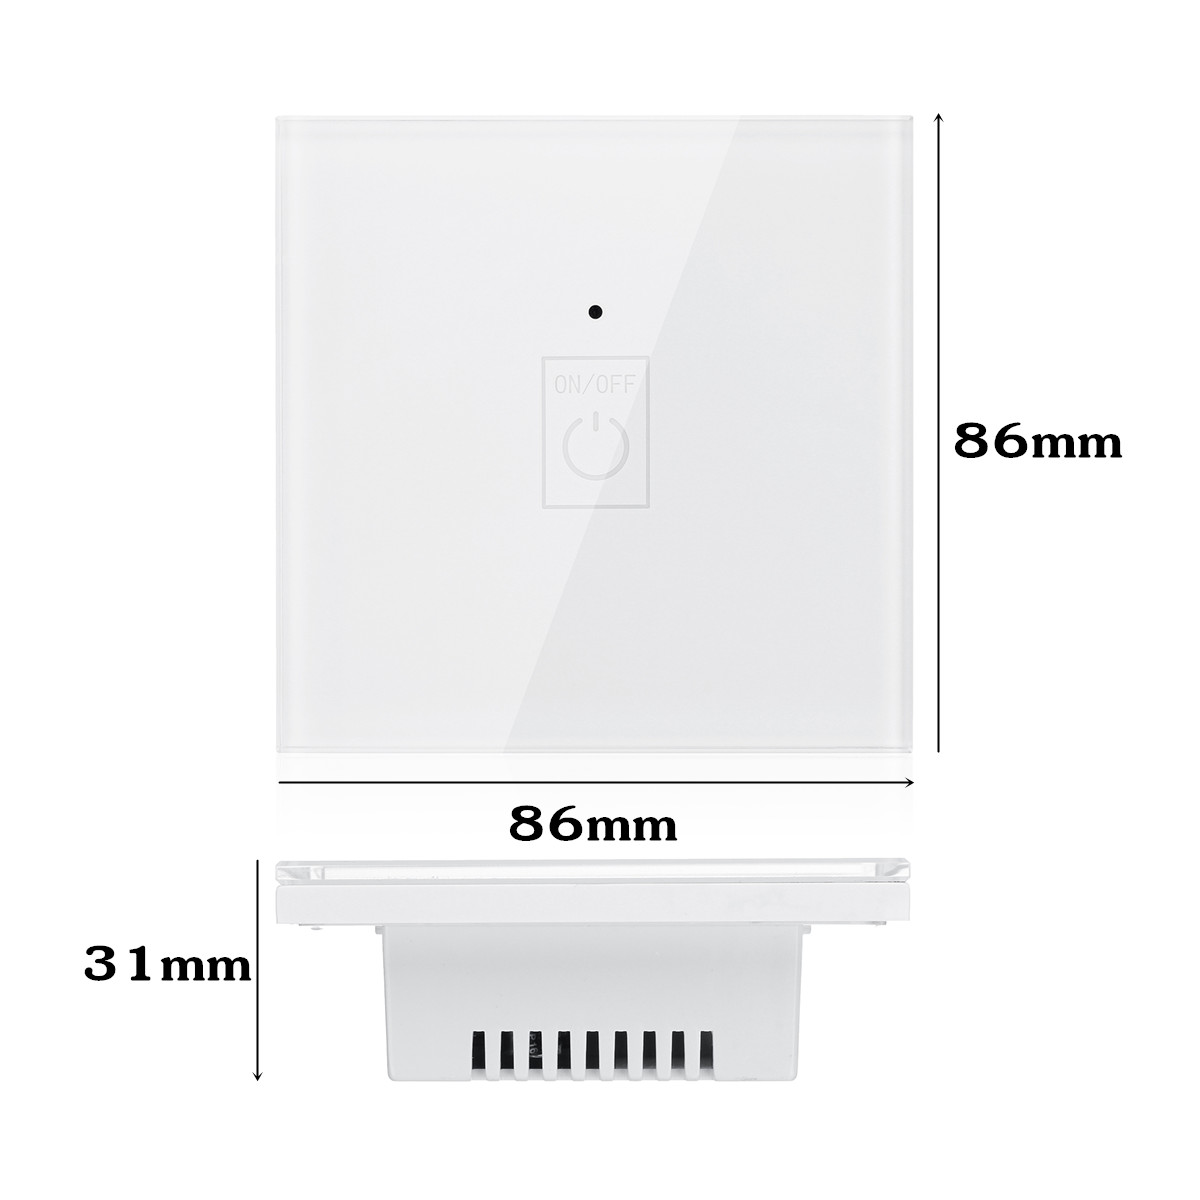 ABS + Toughened Glass Panel AC100V-230V 50/60Hz 1/2/3Gang WIFI Smart Wall Light Remote Panel Switch For Amazon-Echo Google Home